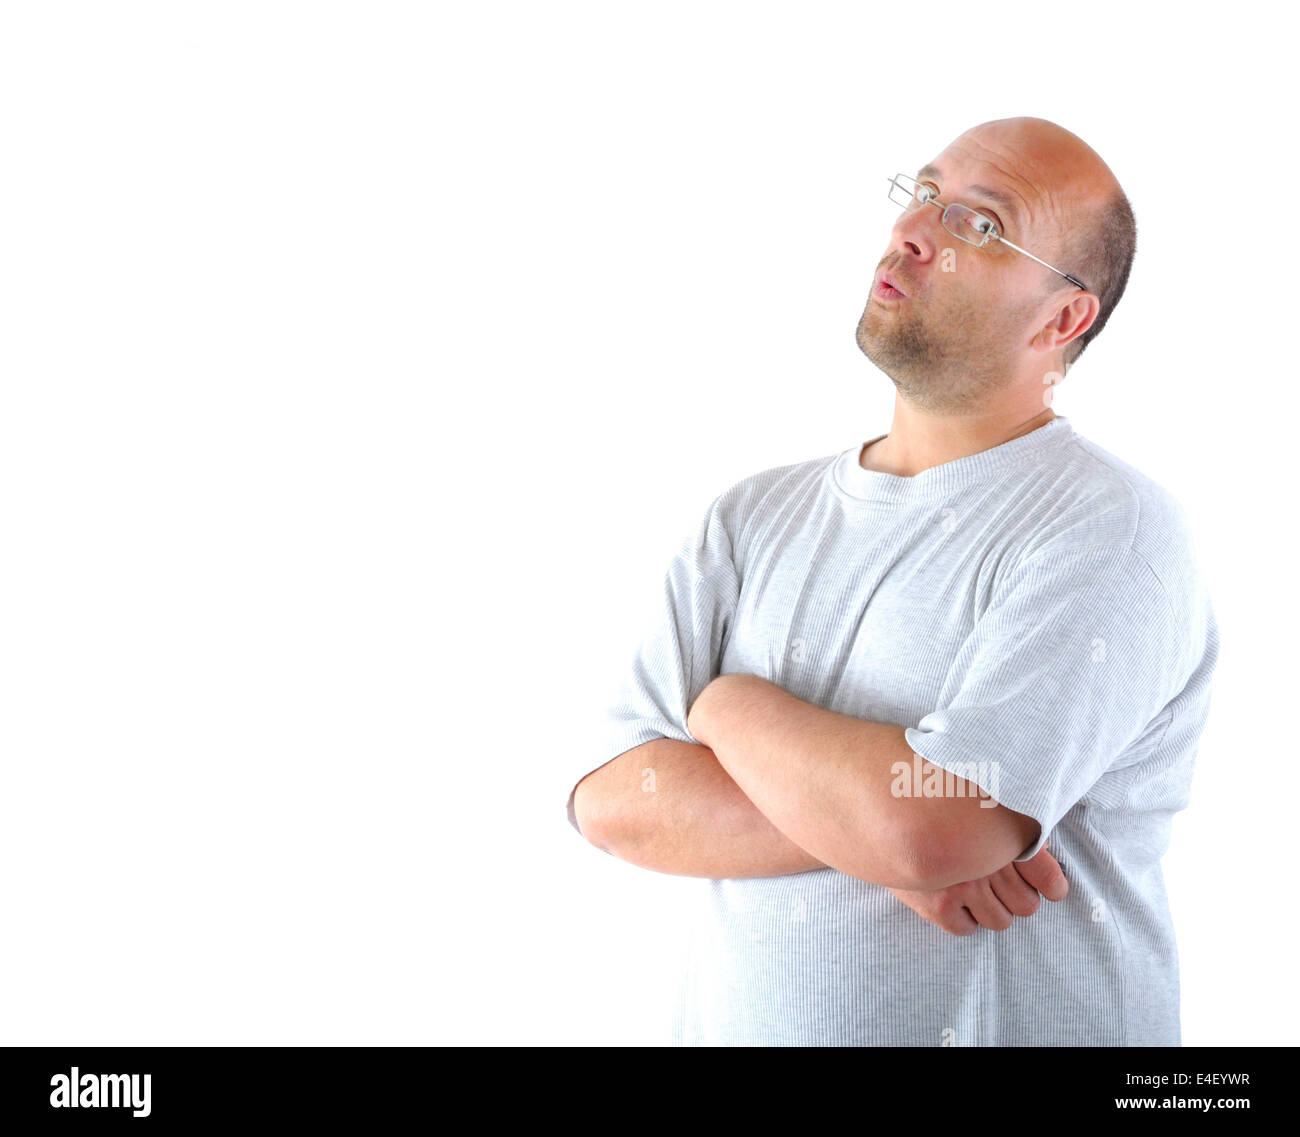 Man looking skeptical into the camera - Stock Image